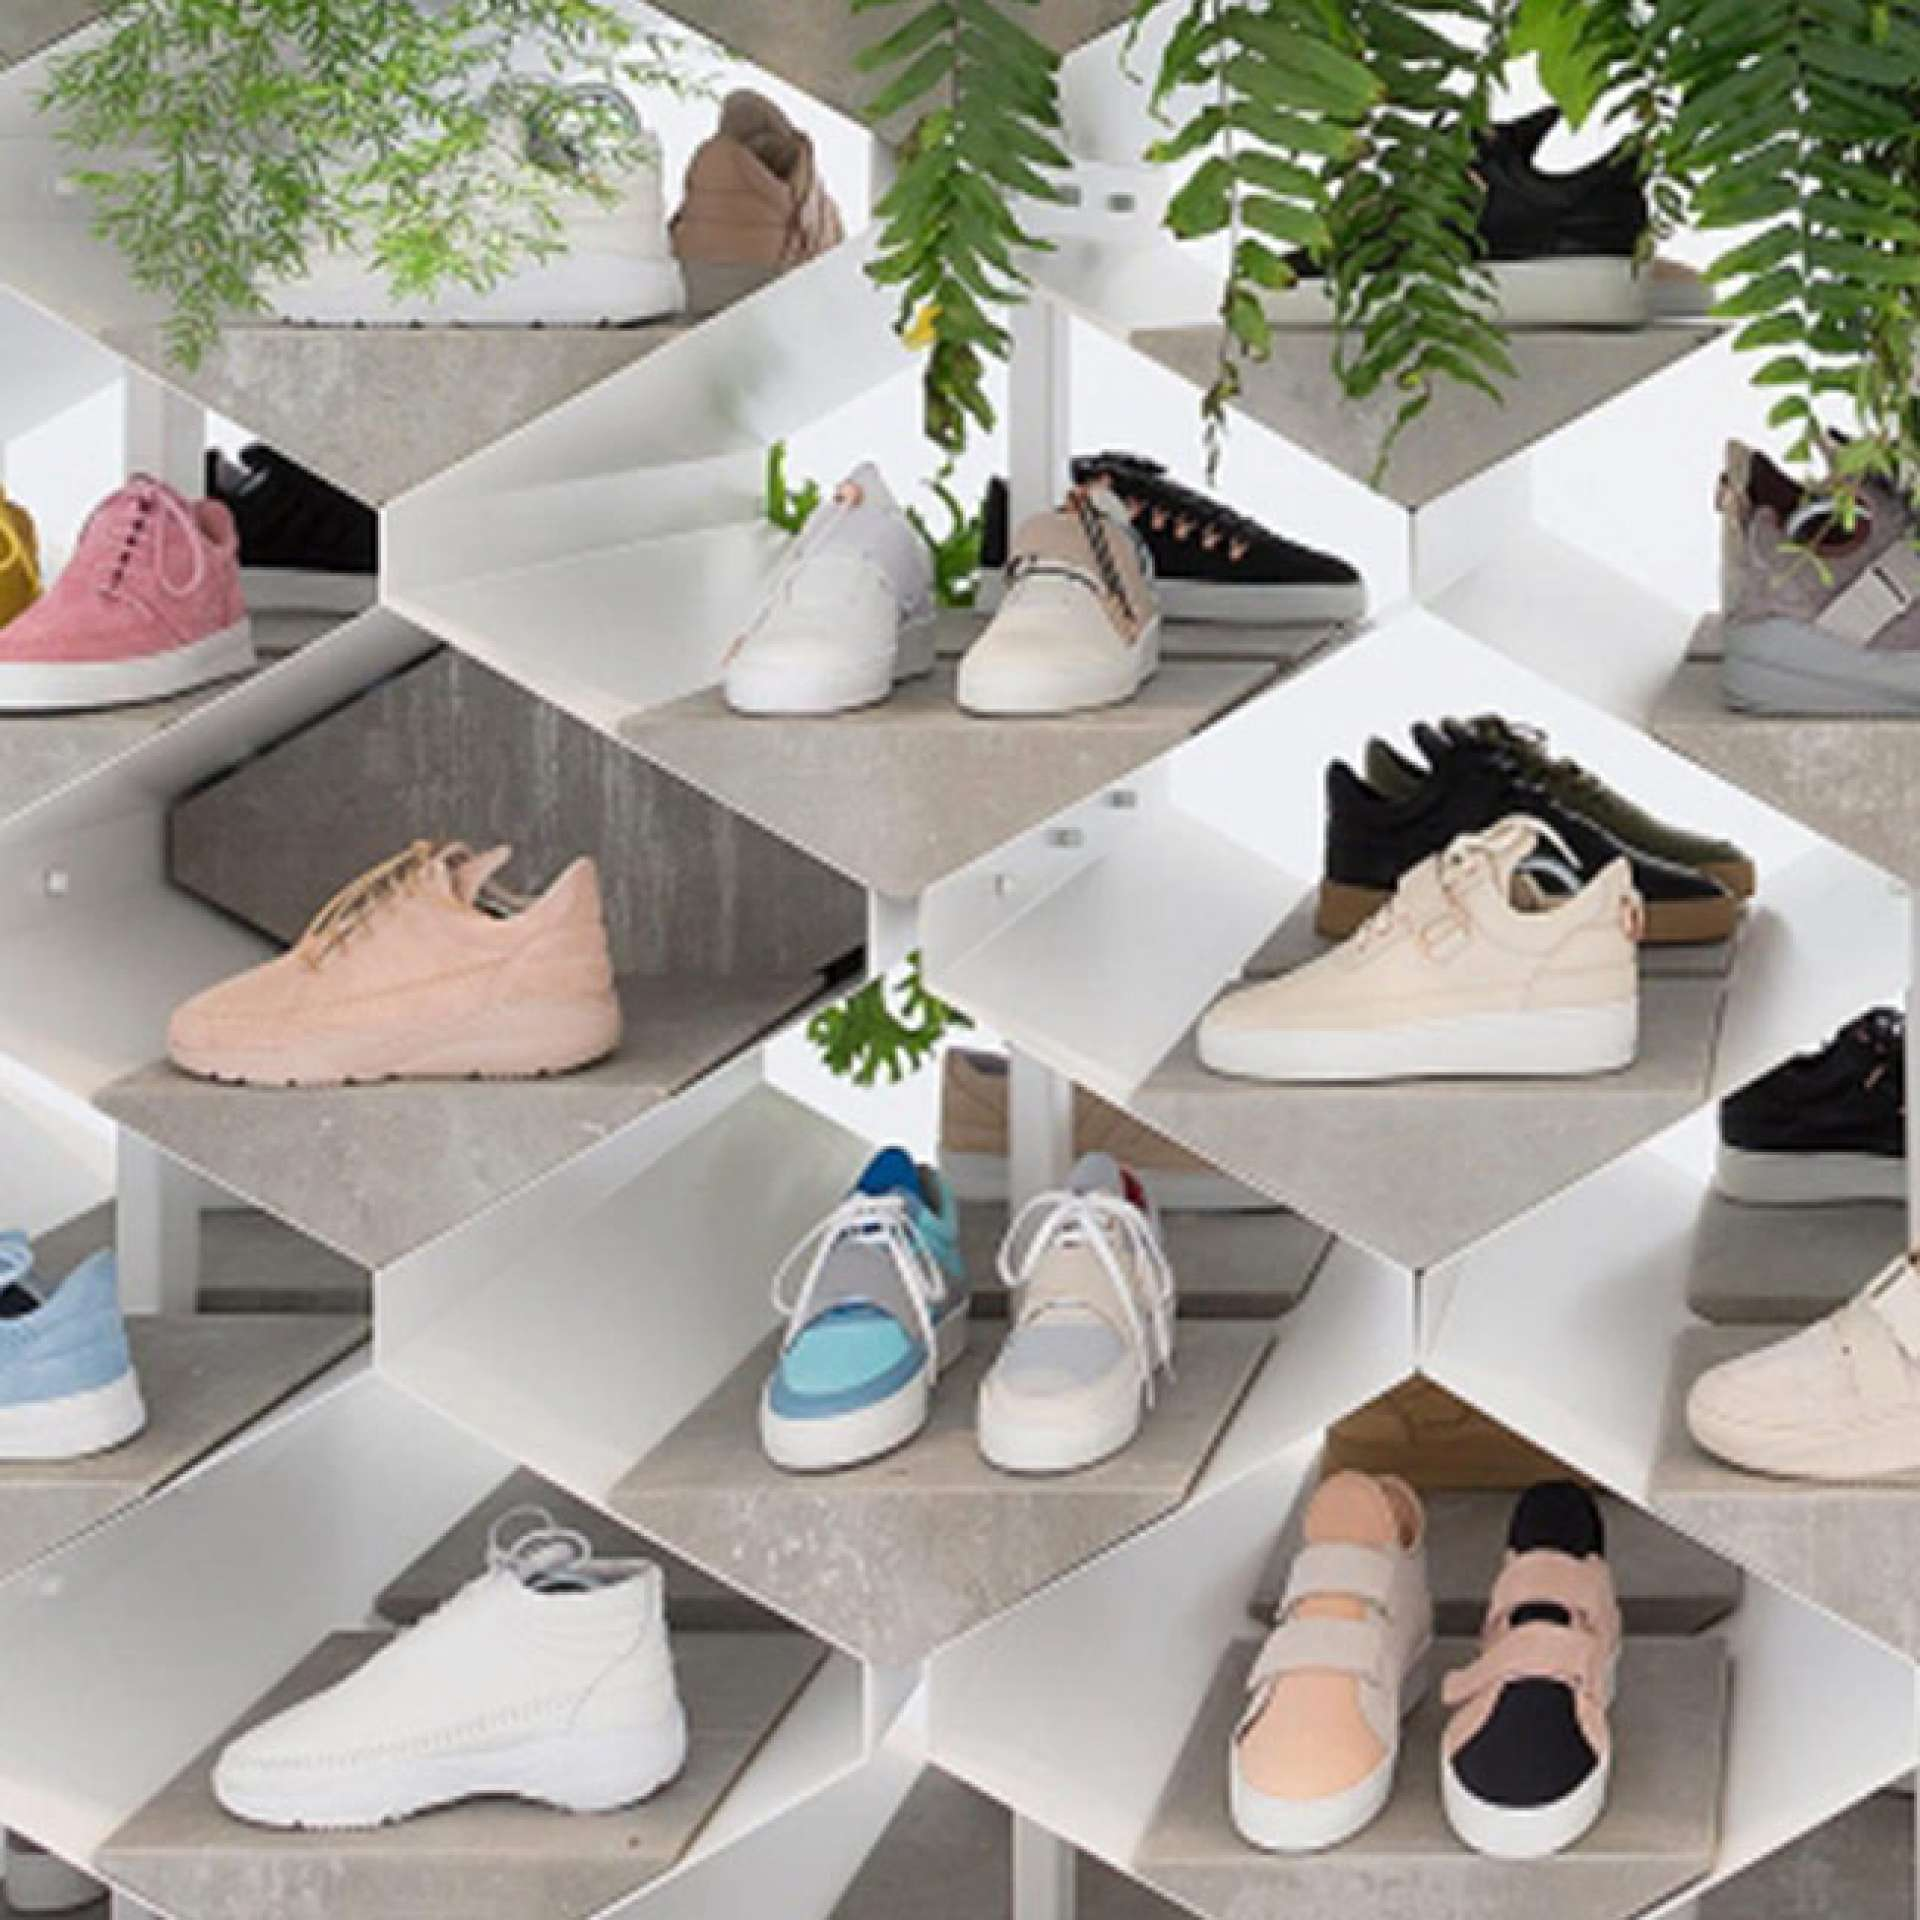 Filling Pieces exhibition by Flip Ziedses Des Plantes at Paris Fashion Week